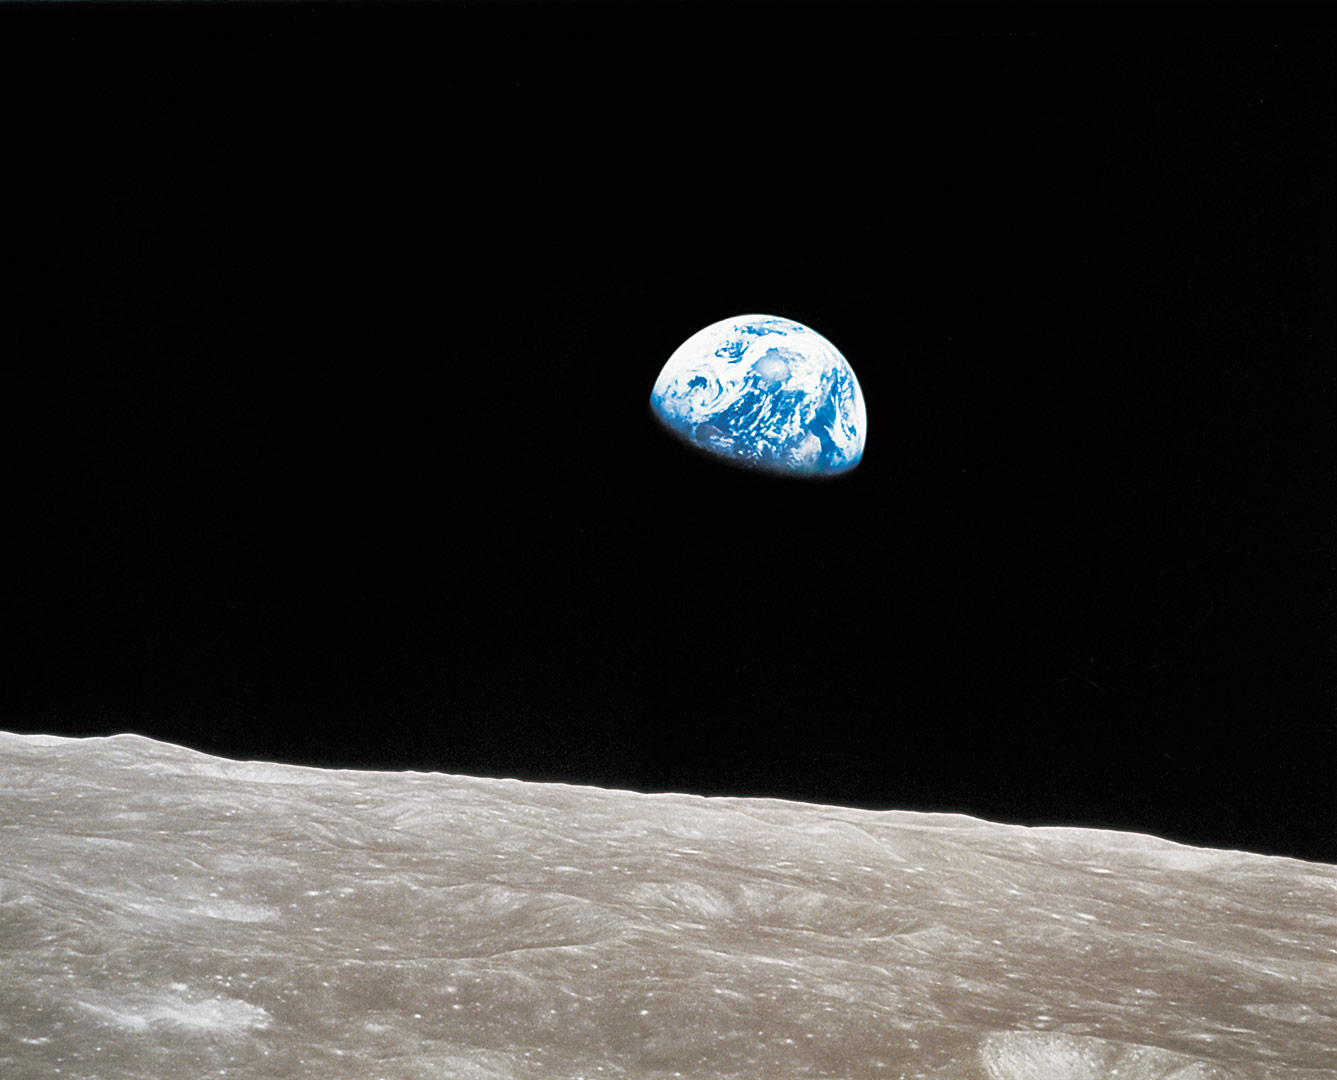 Image of the Earth captured from a lunar spacecraft as it came around the Moon. The Moon is in the foreground and Earth in the background